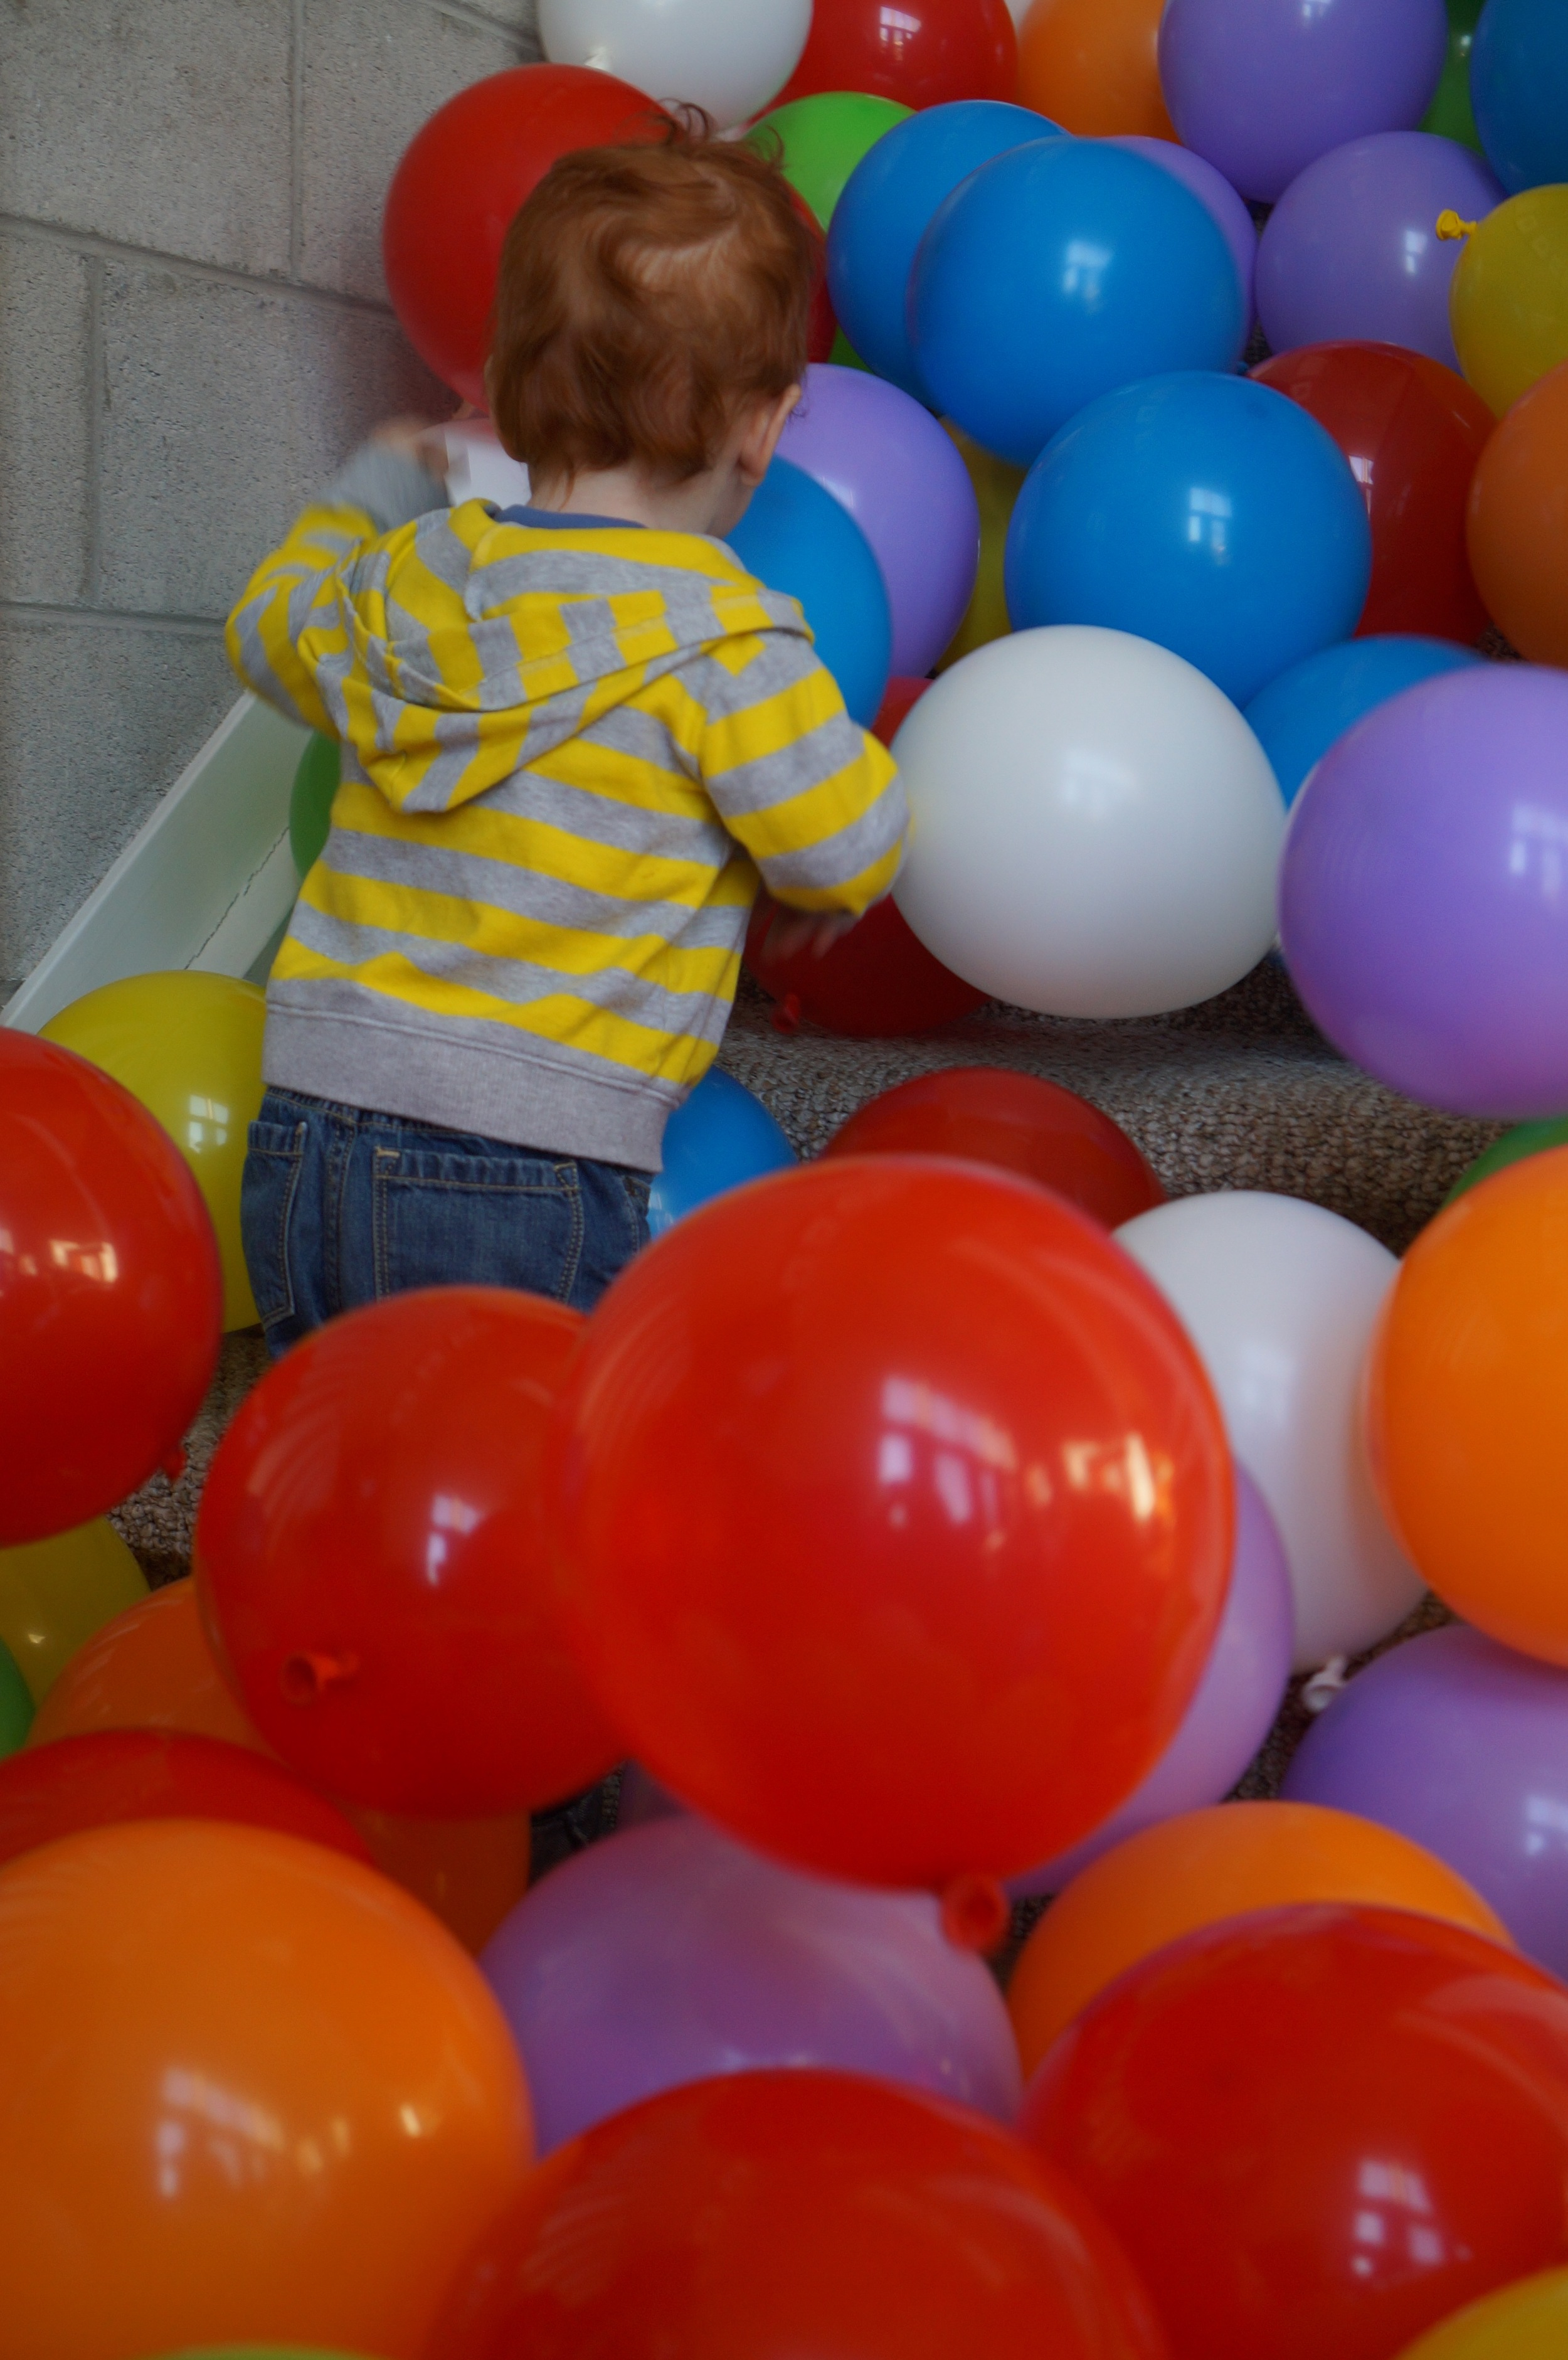 Play. Getting low helps you see the world from kiddo's perspective.